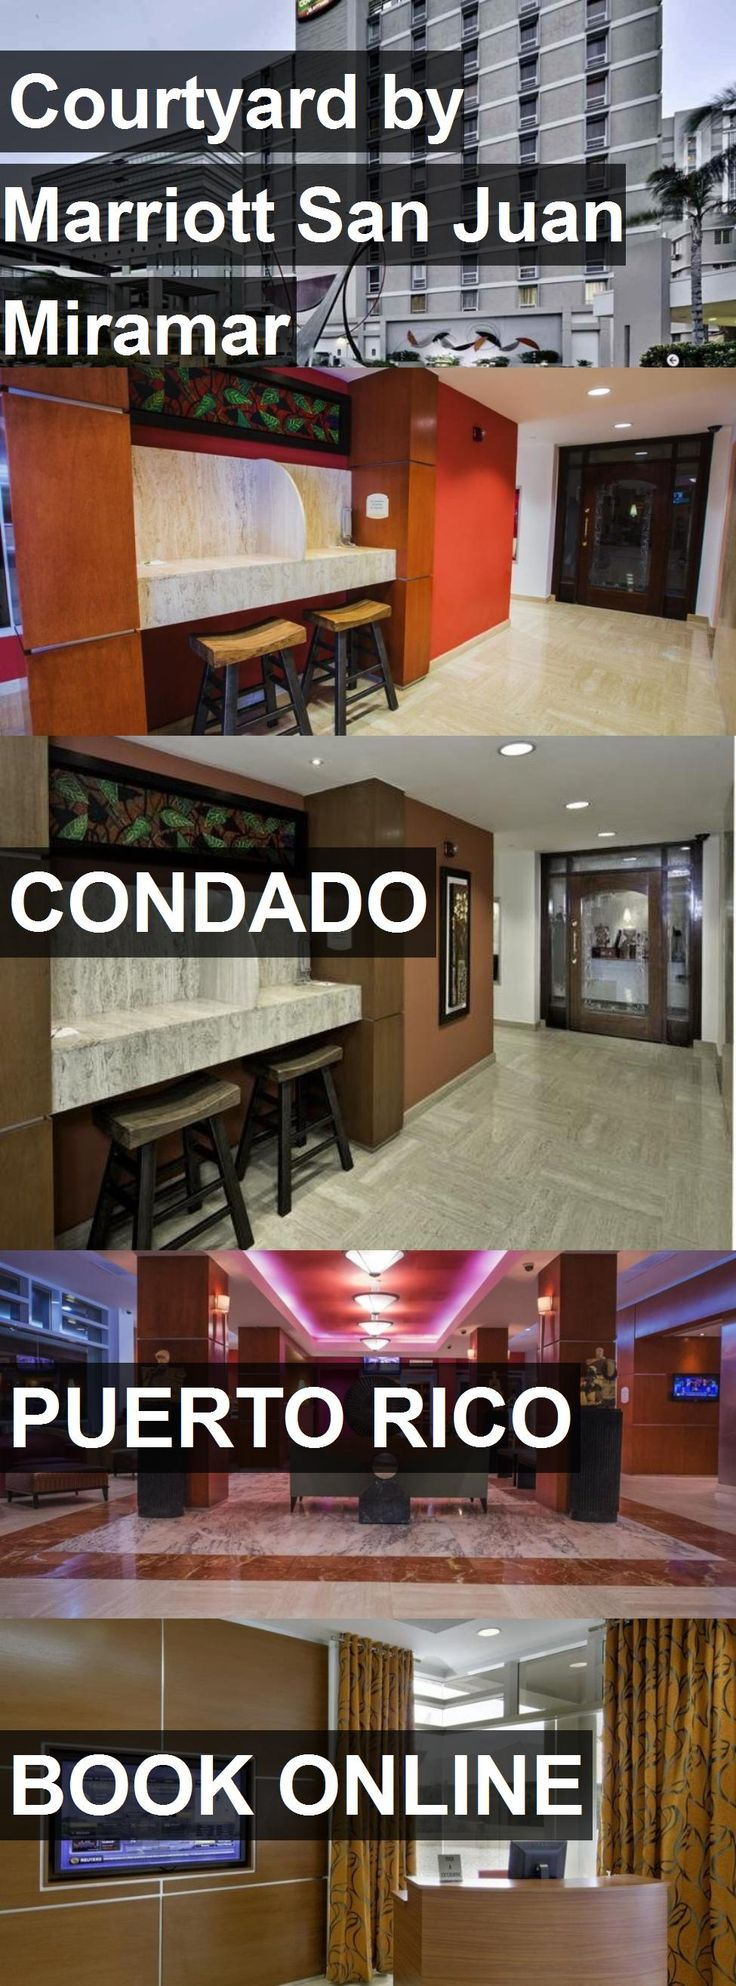 Hotel Courtyard by Marriott San Juan Miramar in Condado, Puerto Rico. For more information, photos, reviews and best prices please follow the link. #PuertoRico #Condado #travel #vacation #hotel